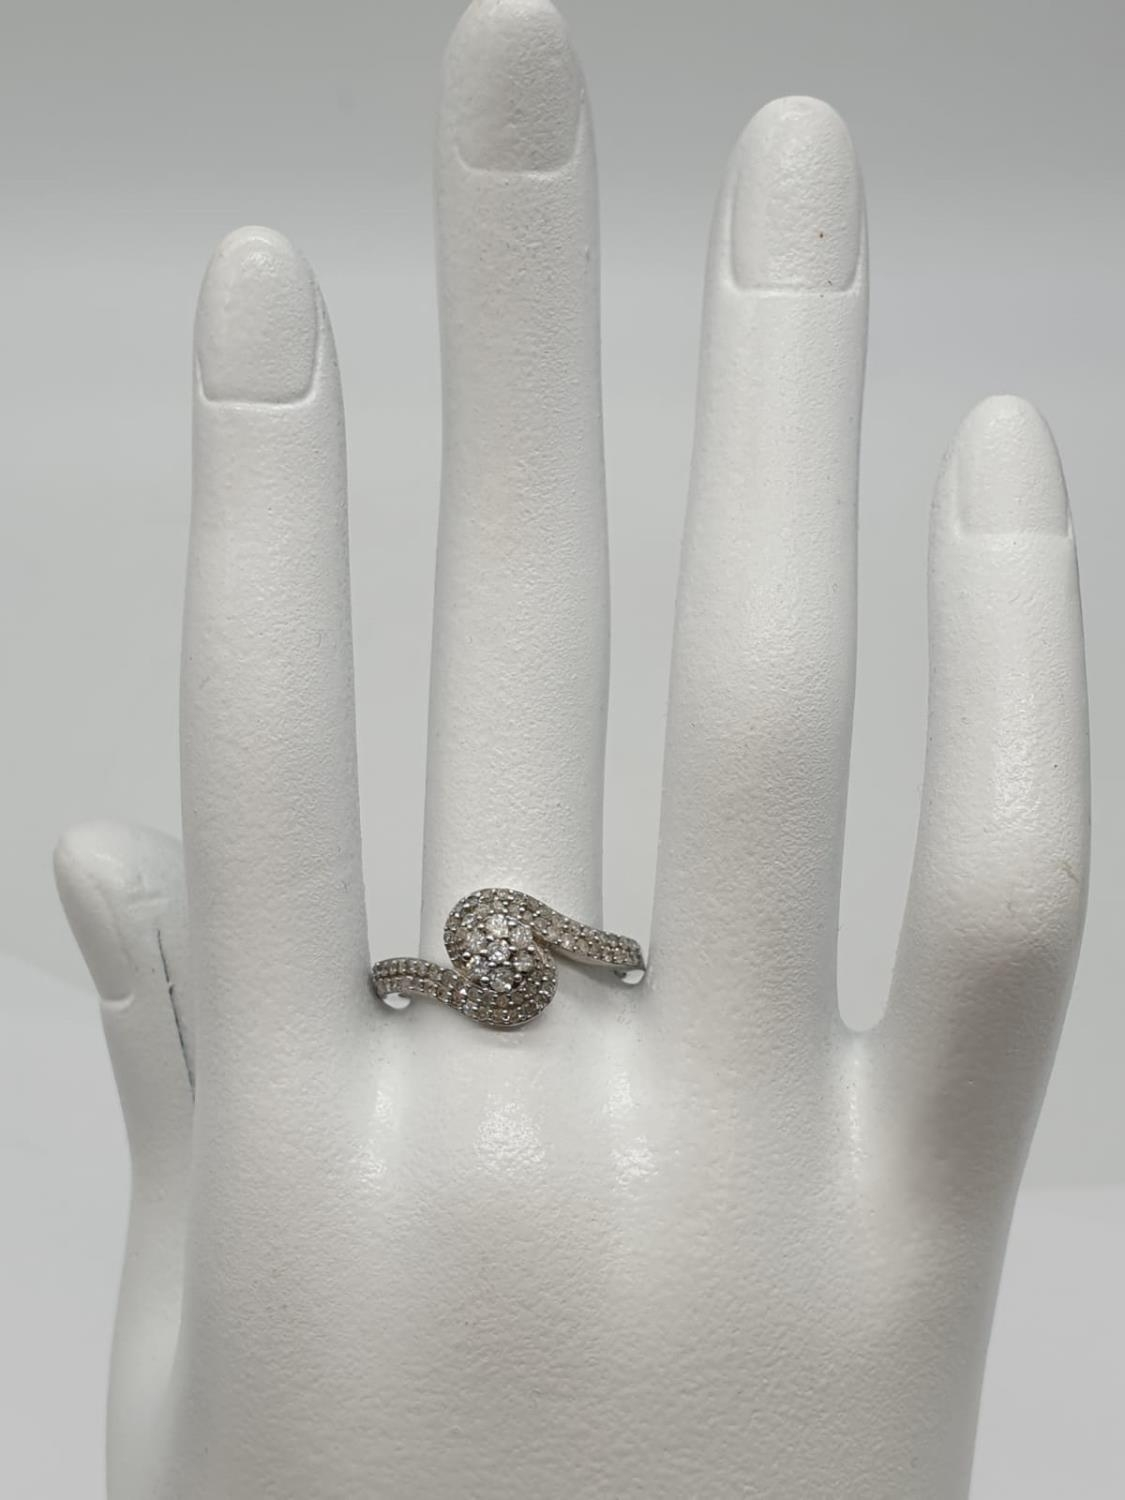 9ct white gold diamond twist cluster ring, 0.50ct diamond approx, weight 2.5g and size P - Image 7 of 7